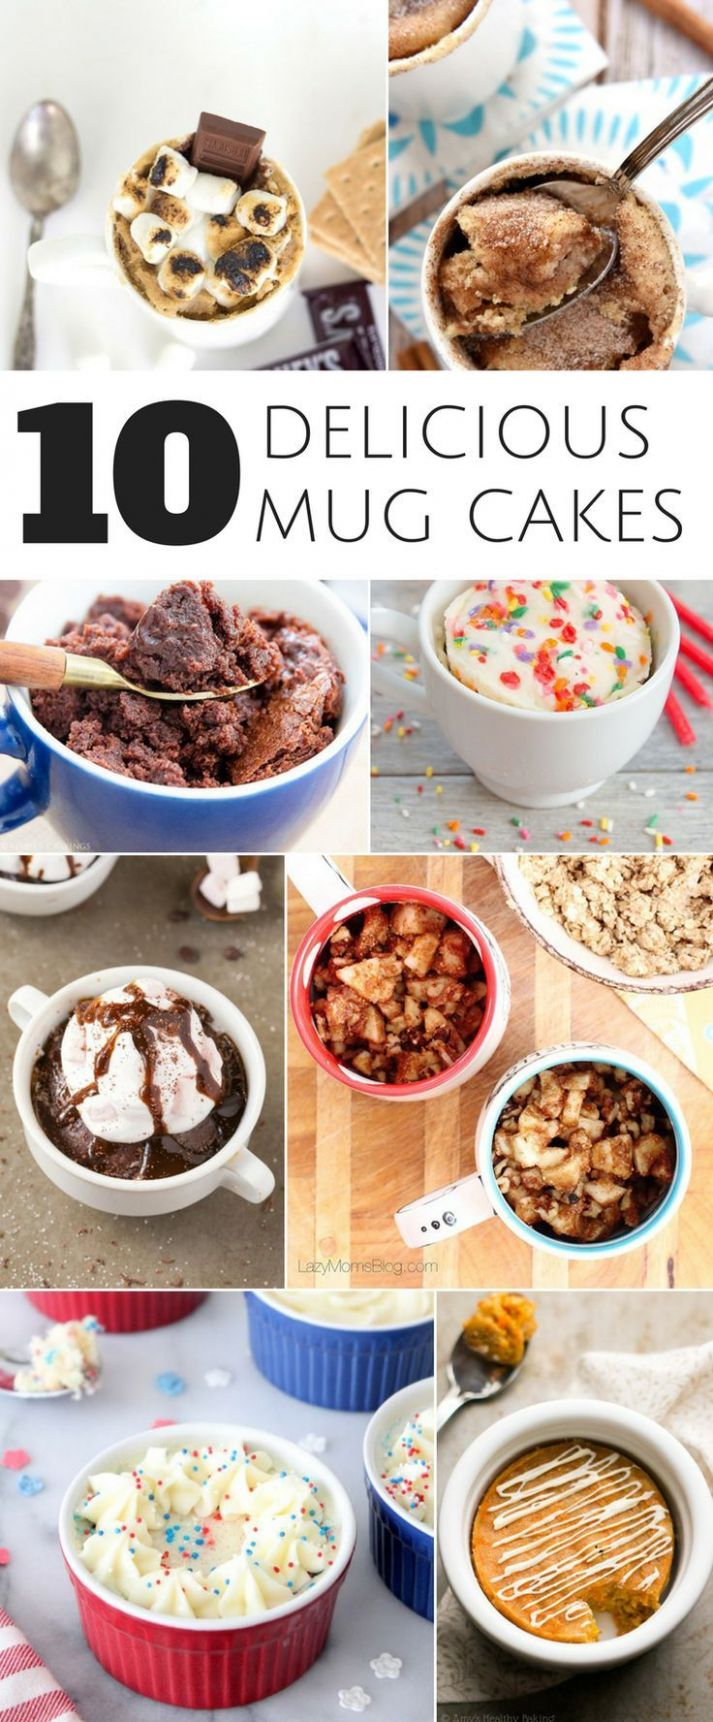 8 DELICIOUS AND KID-FRIENDLY MUG CAKE RECIPES | Cake recipes for ..